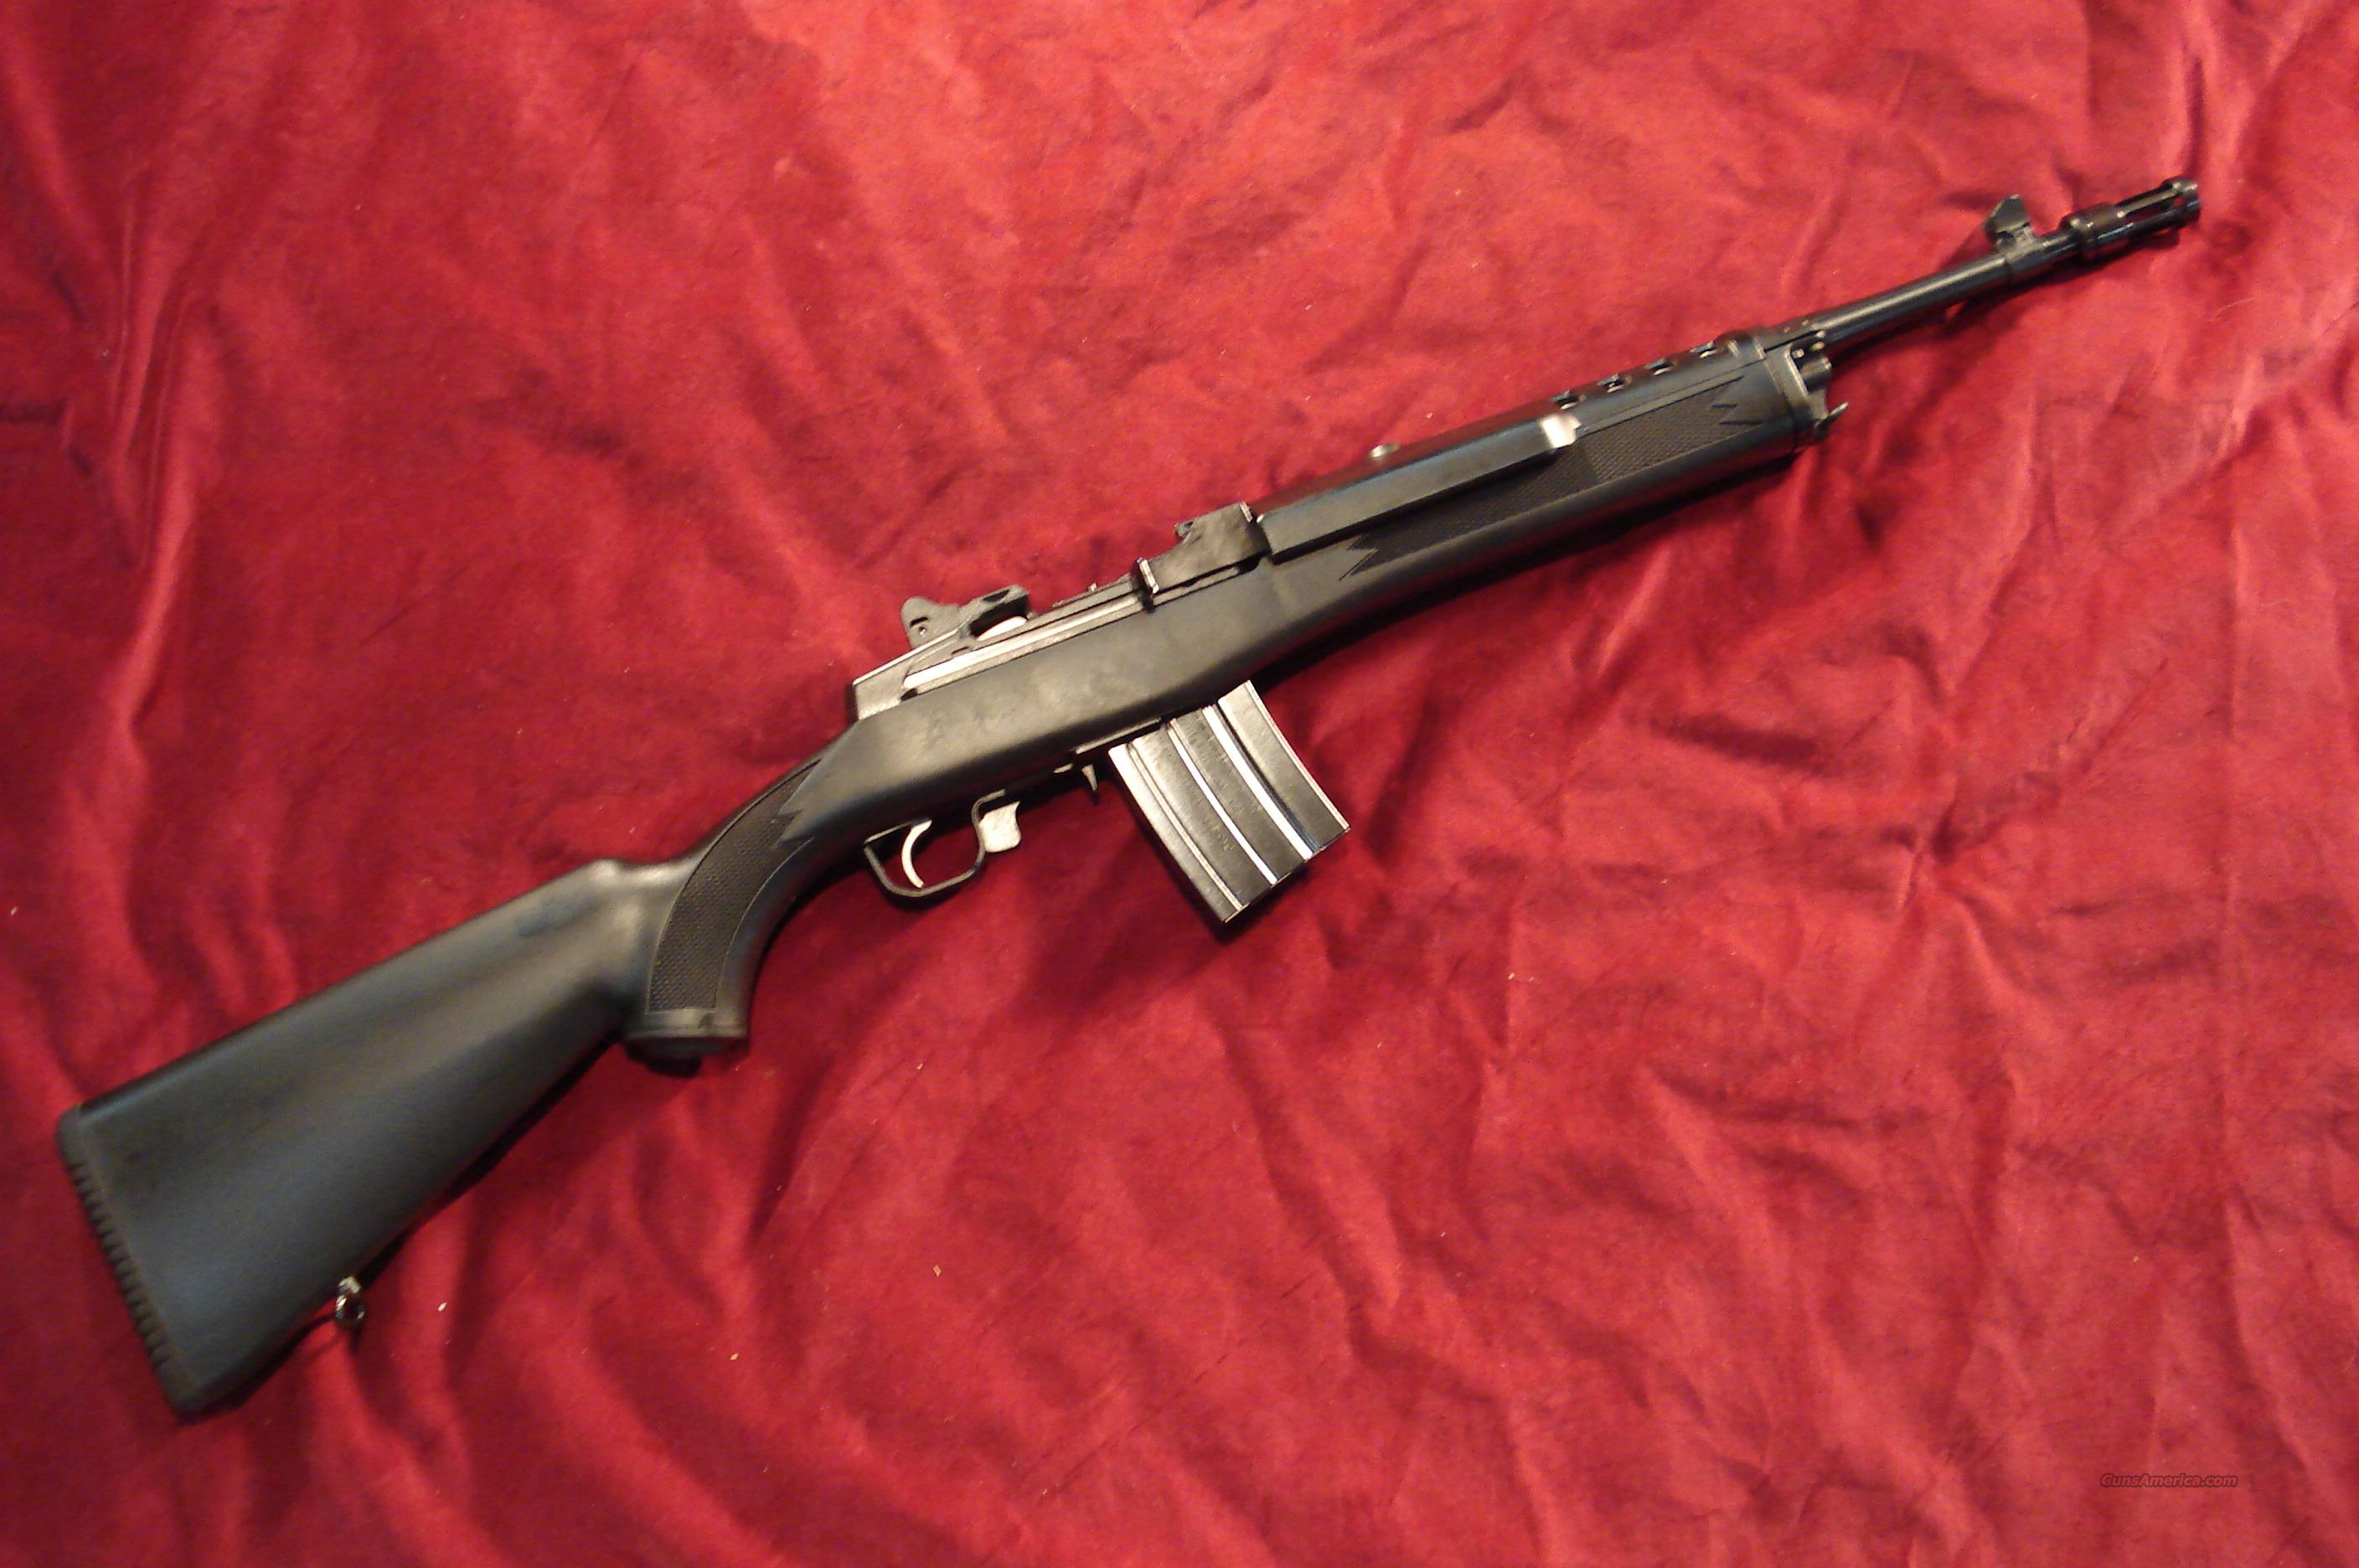 RUGER MINI 14 TACTICAL RIFLE 223 CAL. NEW    (M-14/20GBCPC)  Guns > Rifles > Ruger Rifles > Mini-14 Type